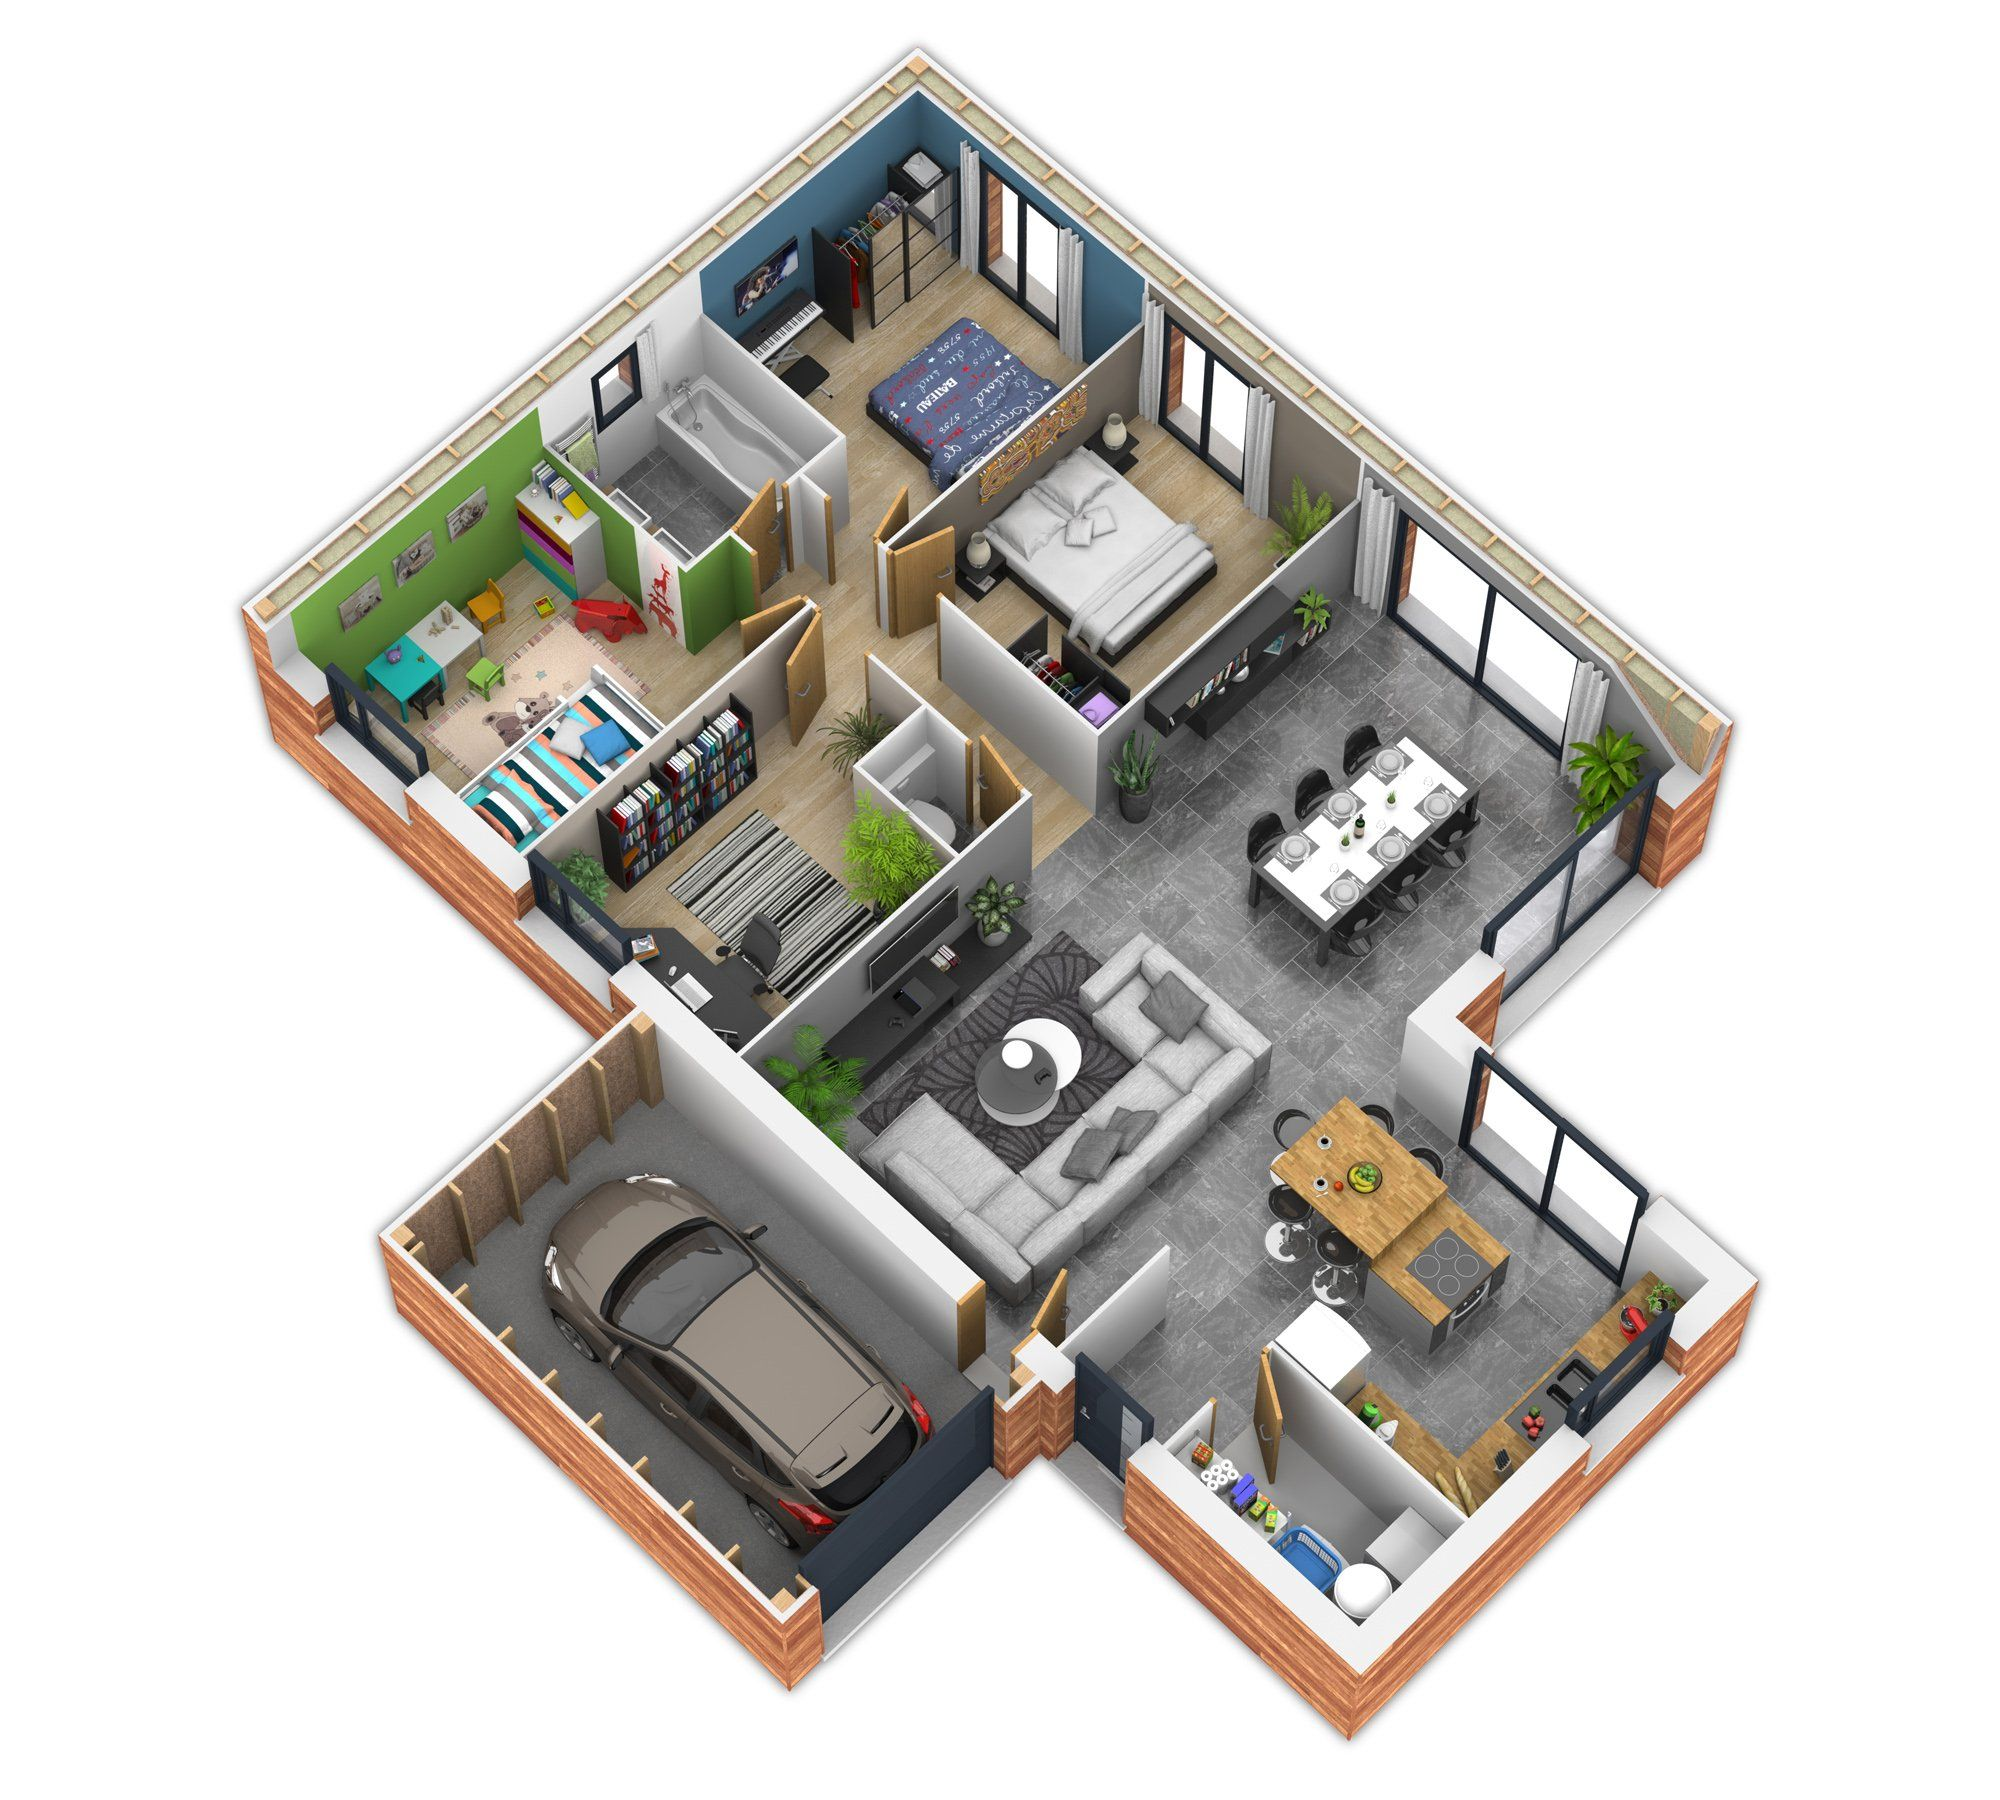 Intérieur 2 Bhk House Plans 3d House Plans New House Plans